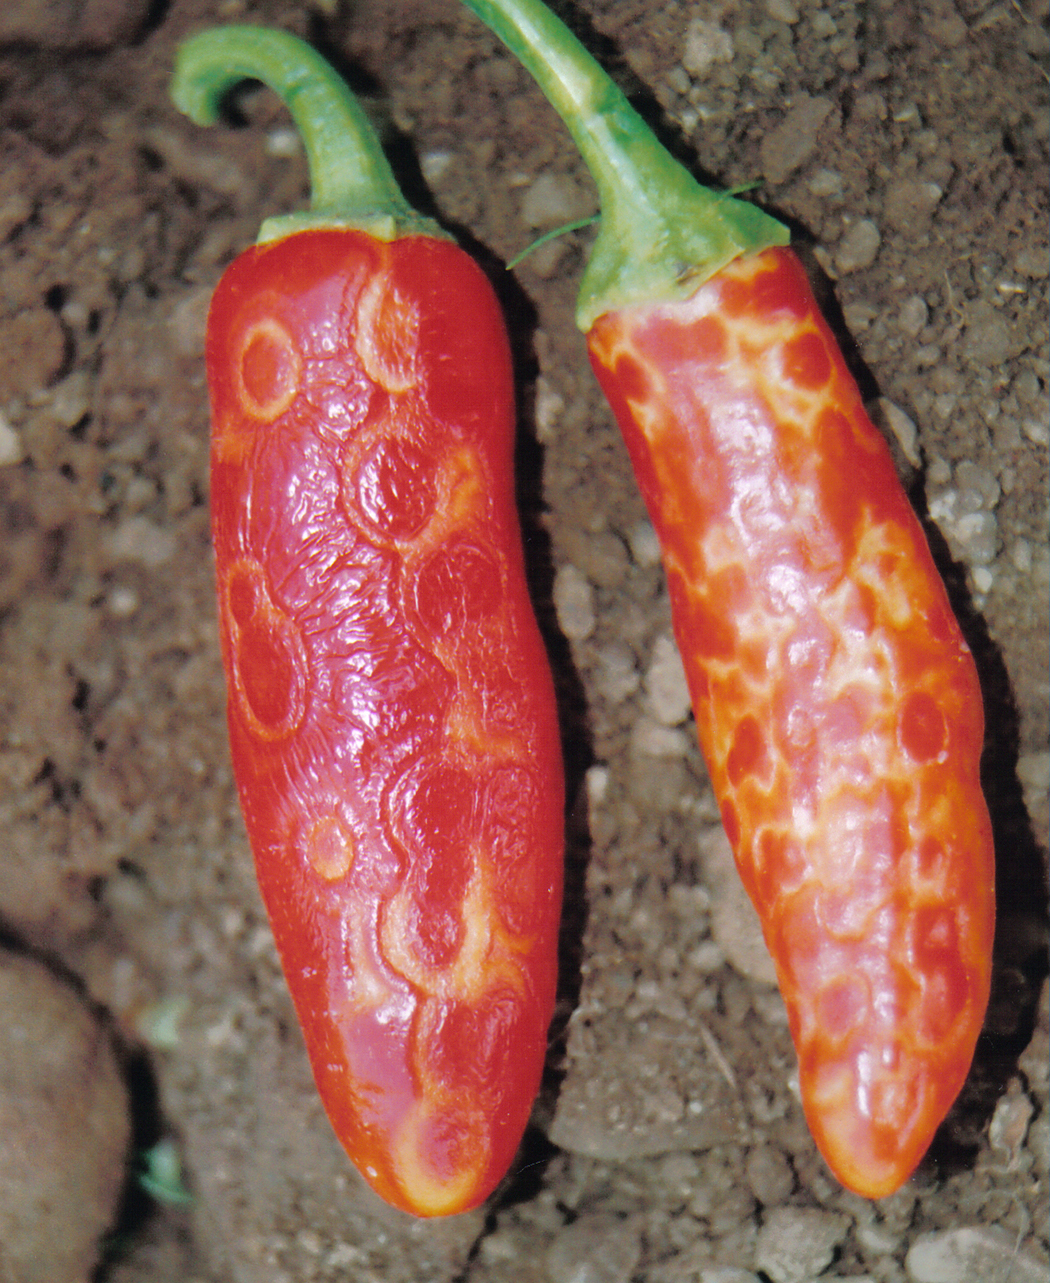 TSWV can also appear as ring spots on peppers